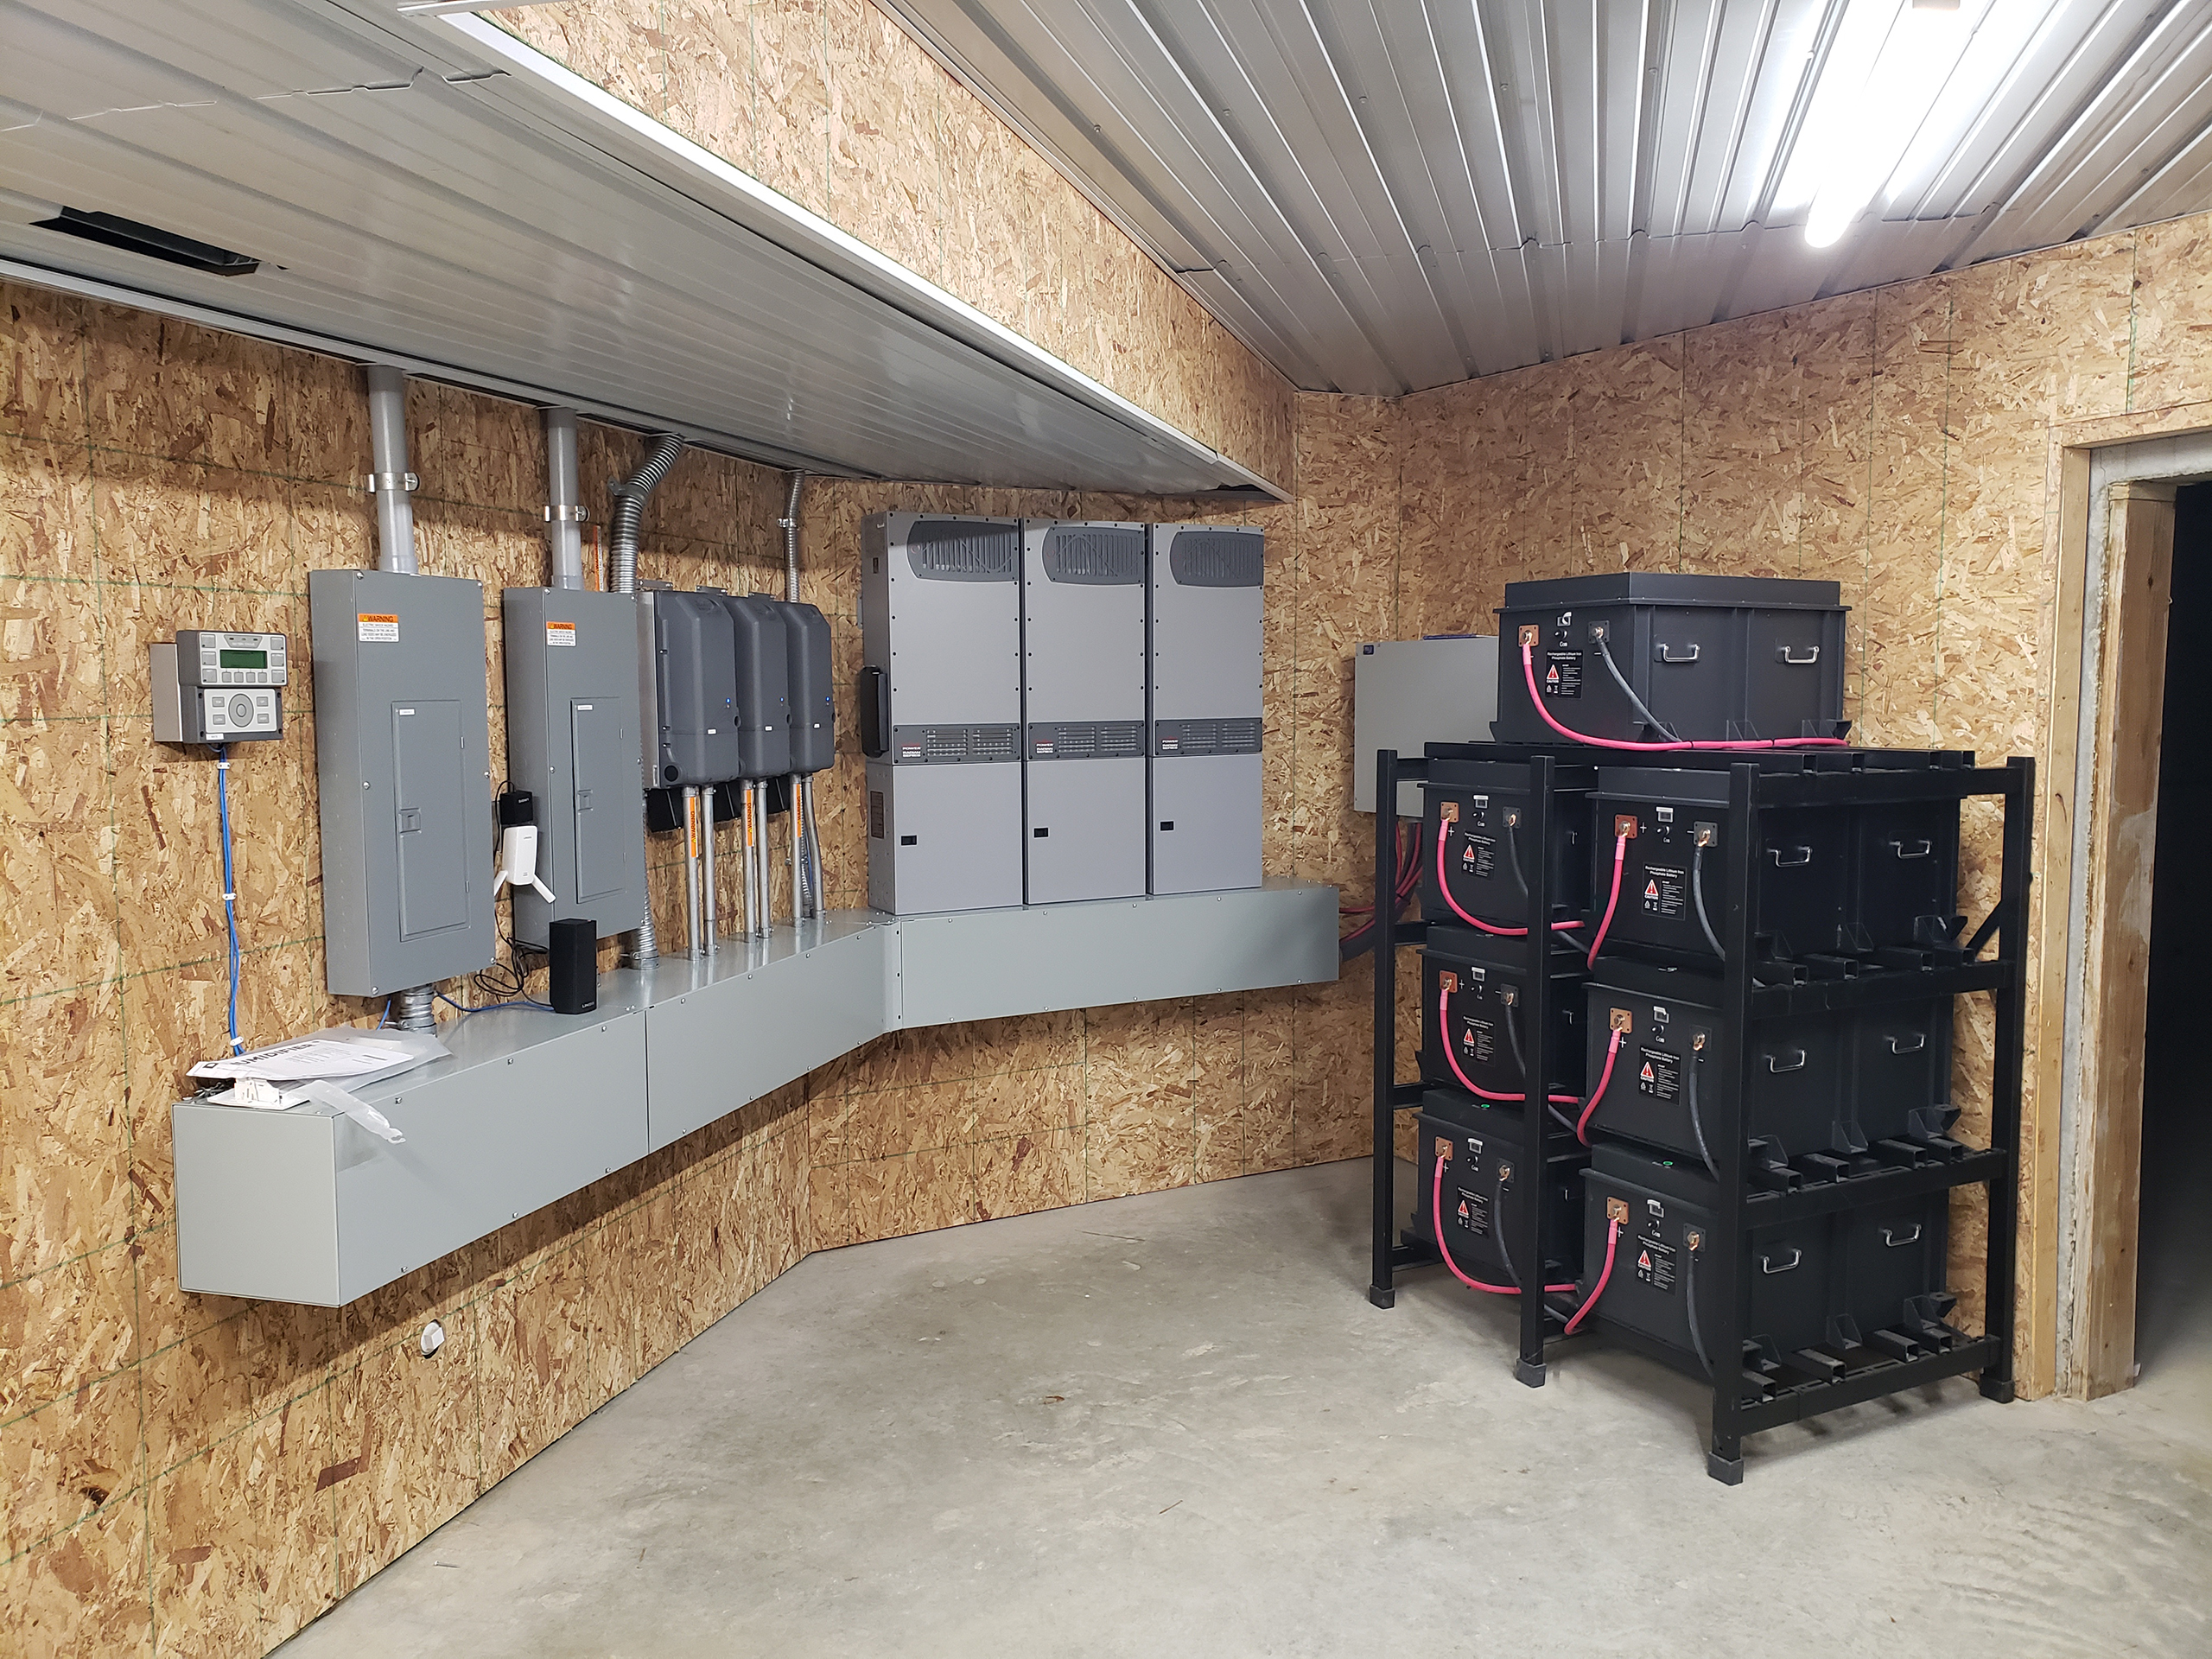 A neatly organized battery system is seen in a roomy, albeit unfinished, space. Electric panels and battery system wiring boxes are nicely lined up on the wall. A black rack with large batteries on shelves is against the opposite wall.